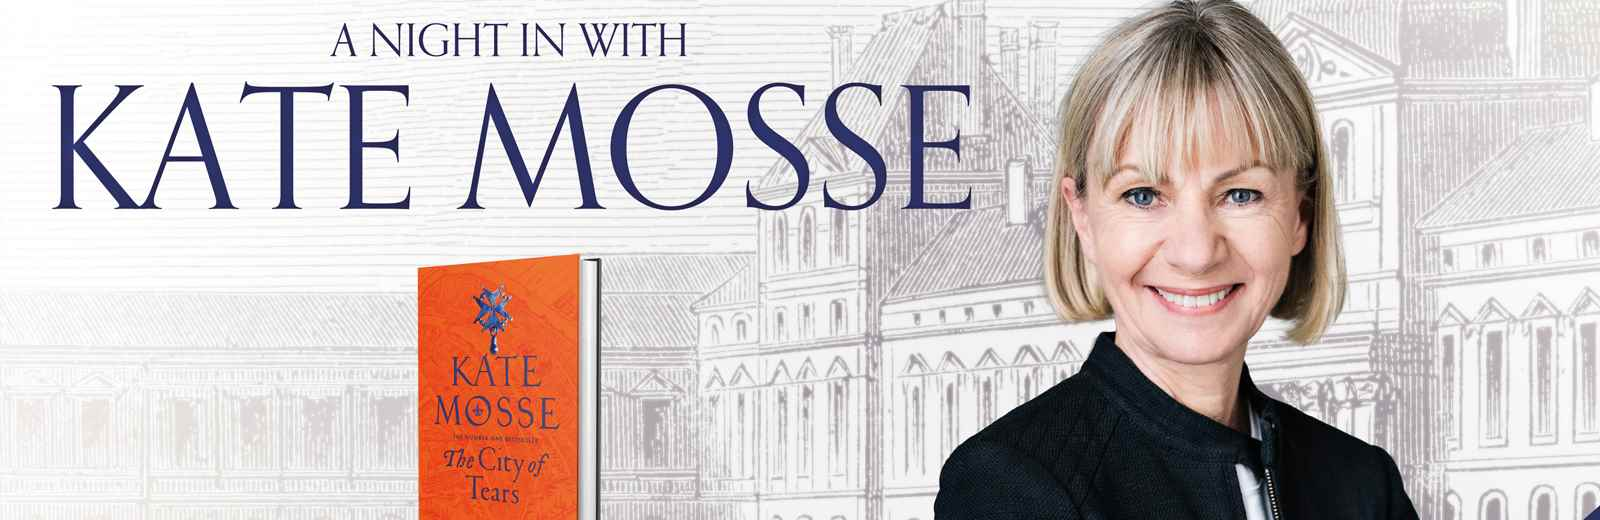 A Night in with Kate Mosse